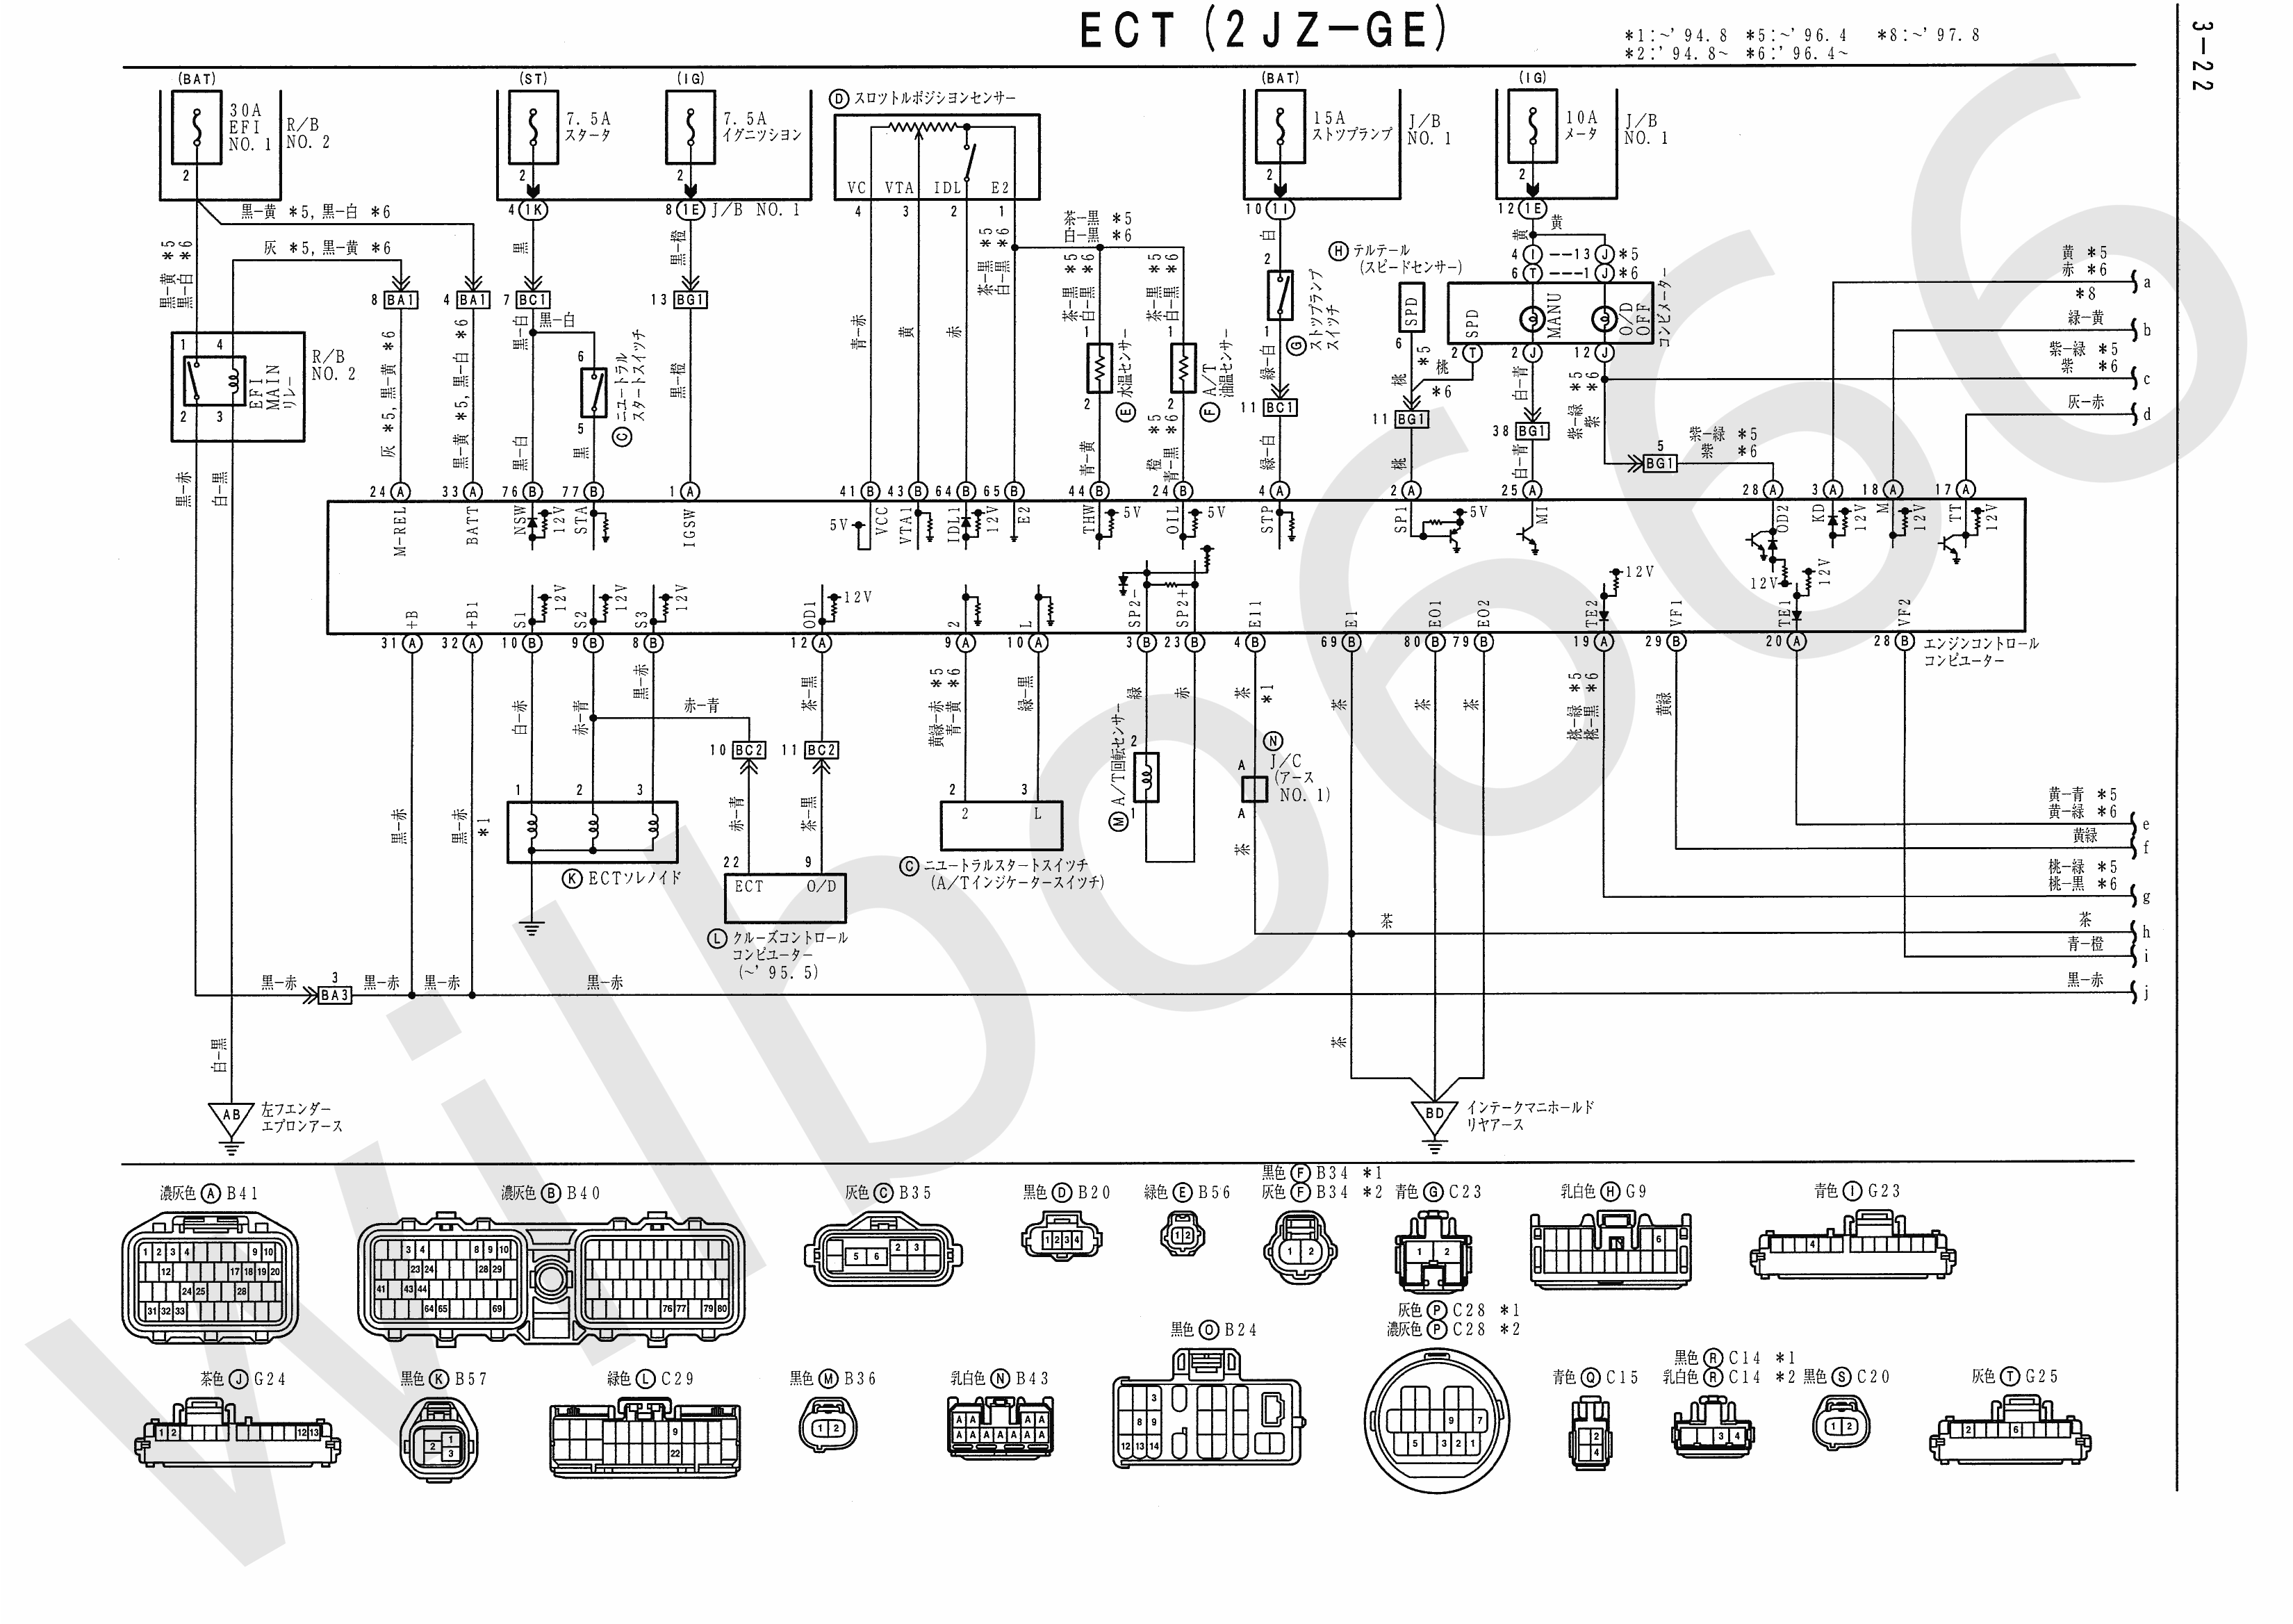 JZA80 Electrical Wiring Diagram 6742505 3 22 wilbo666 2jz ge jza80 supra engine wiring Trailer Wiring Harness at nearapp.co